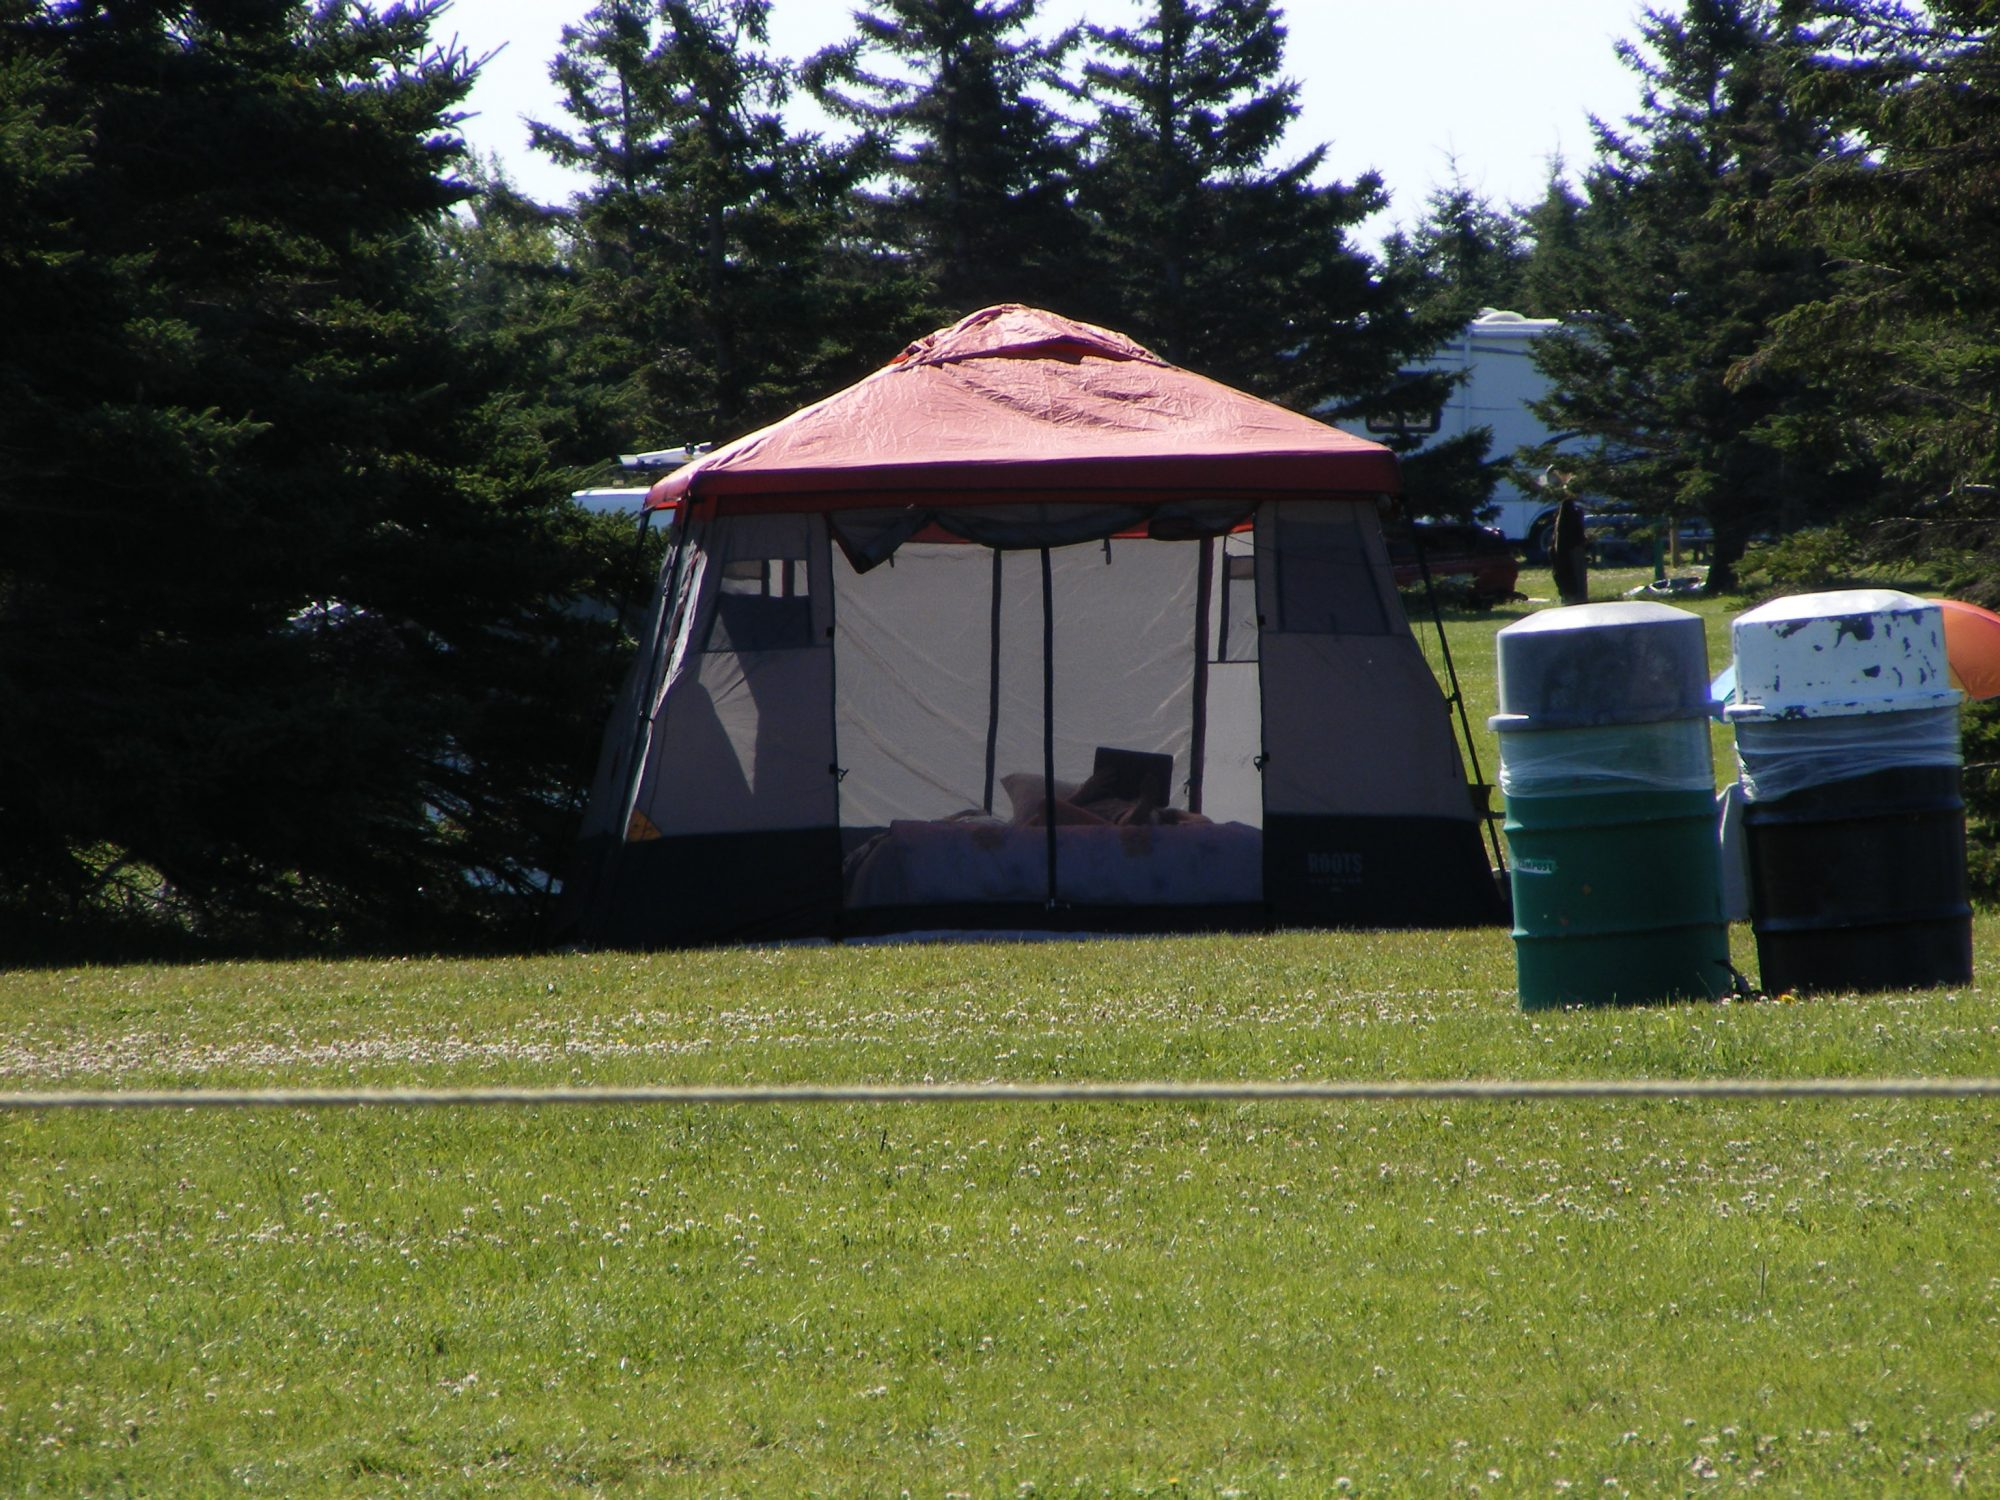 The tent is set up in Prince Edward Island